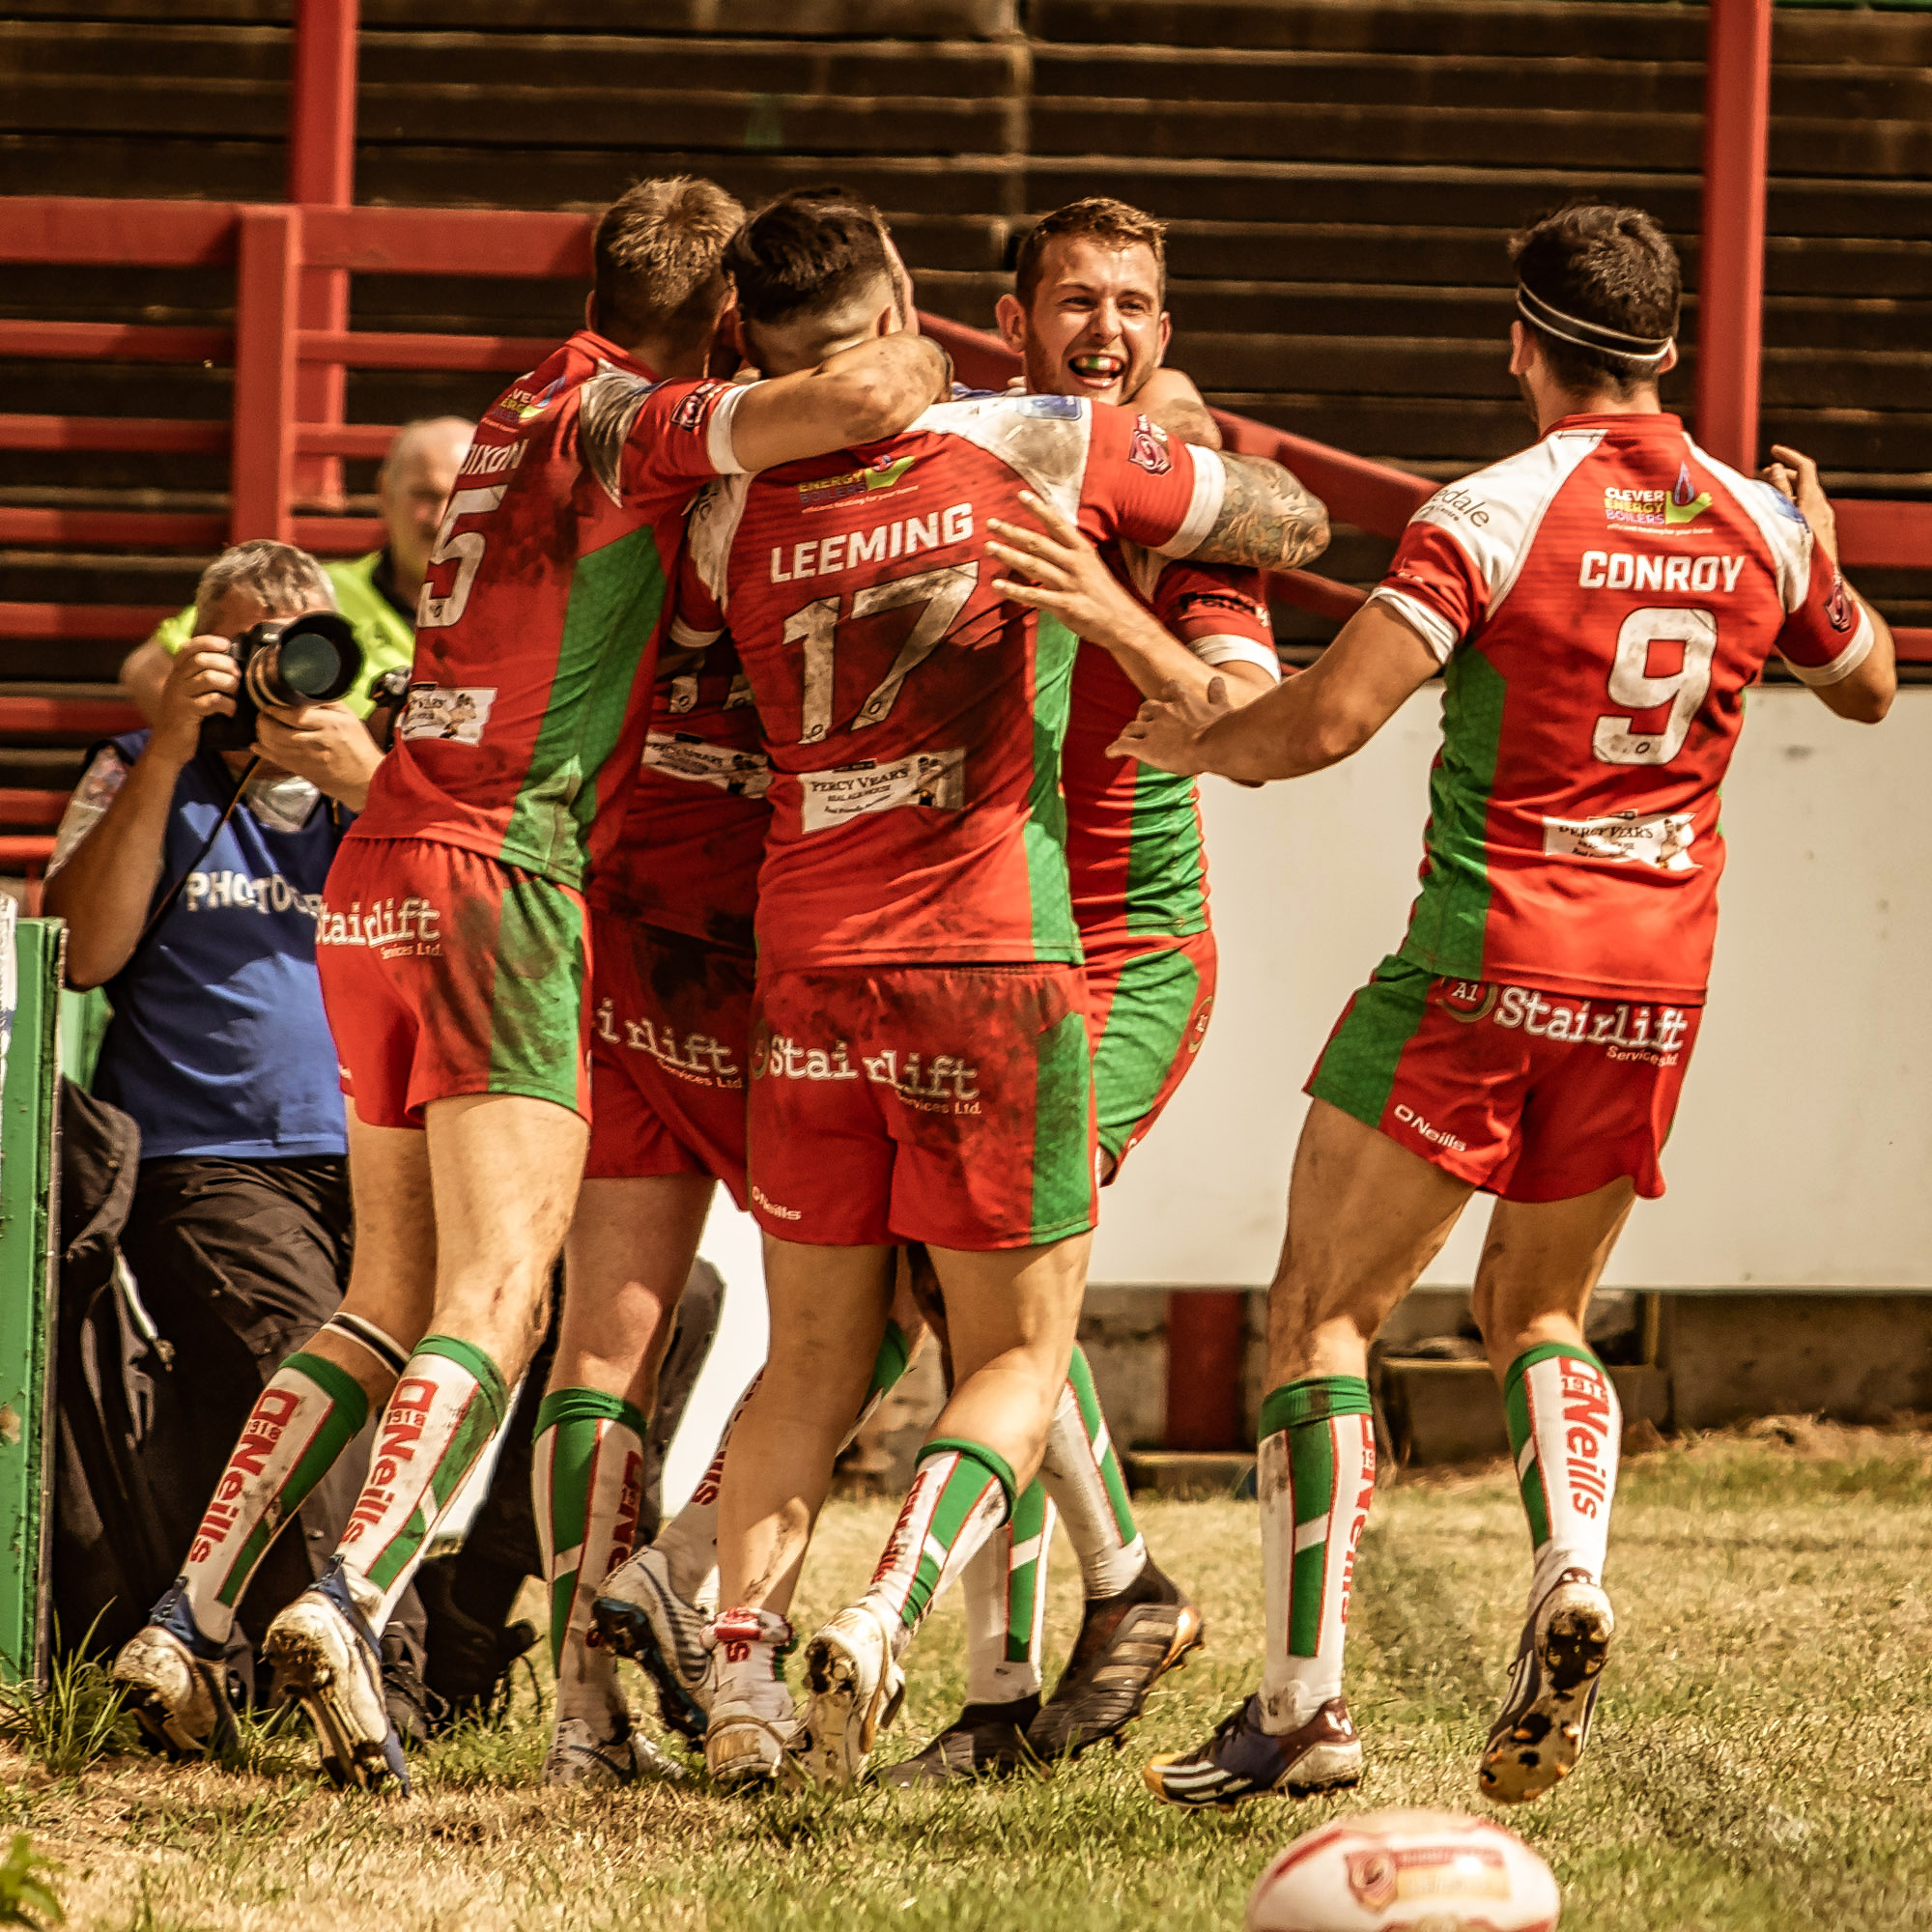 One try I did get a shot of was from a bit of a distance. Pleasing celebration pic though!